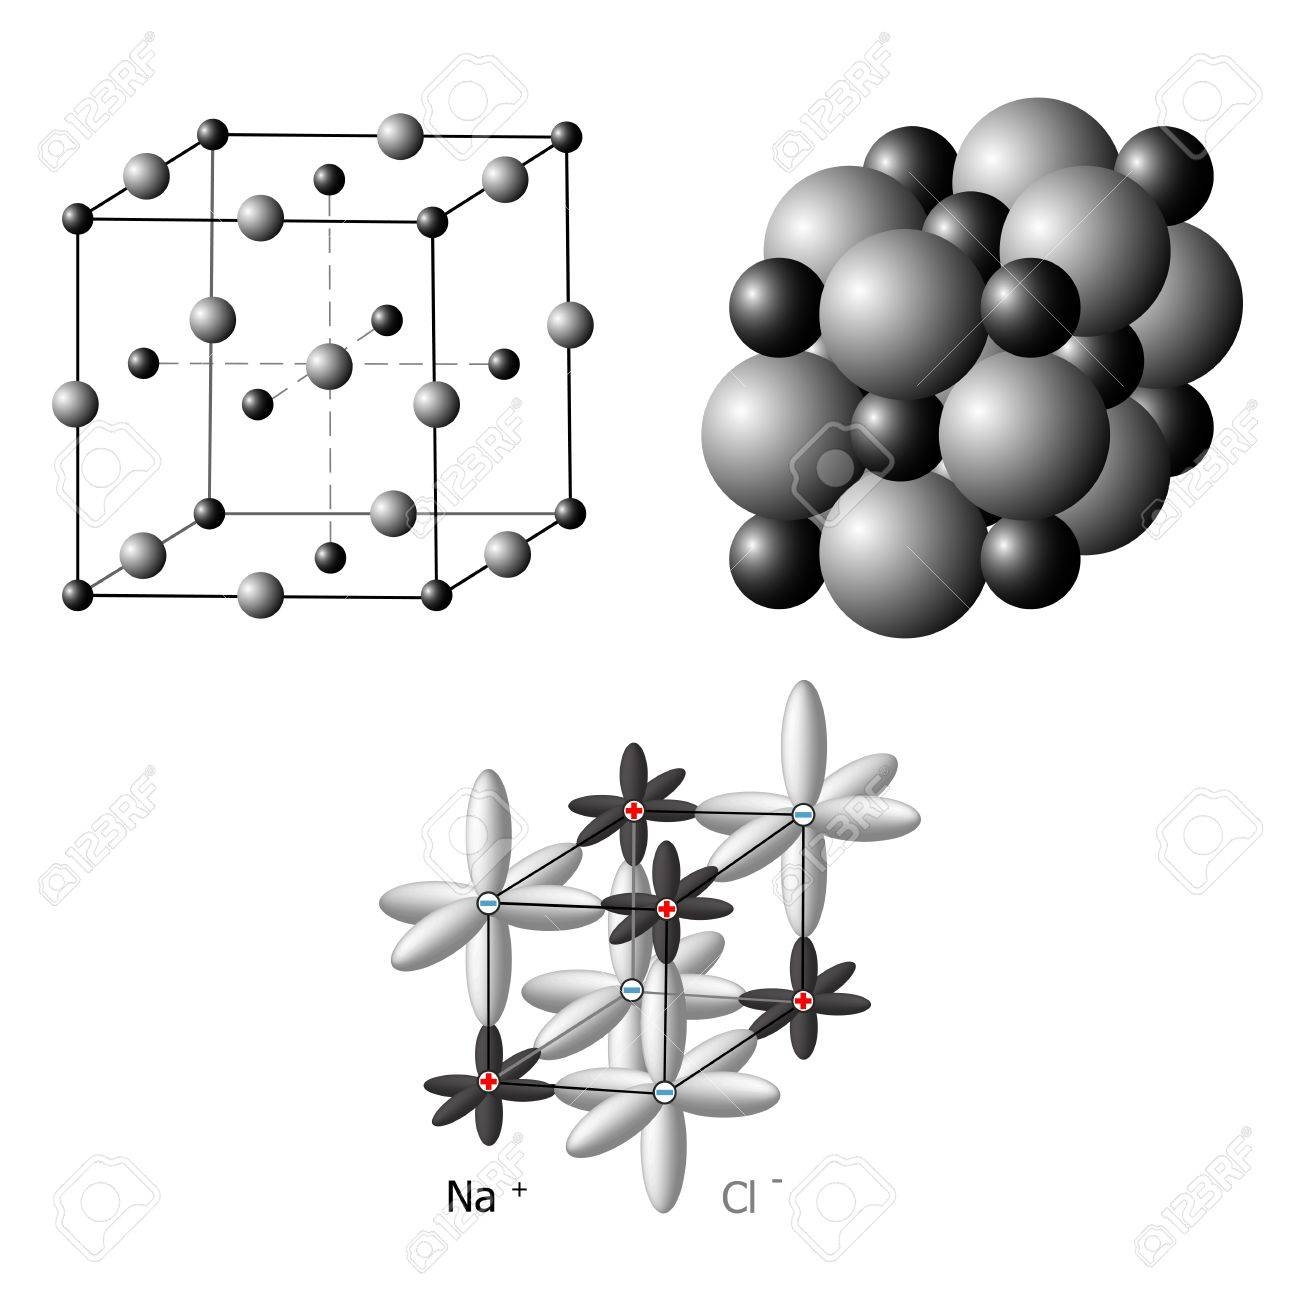 Illustration Of An Ionic Crystal Structure Of Sodium Chloride